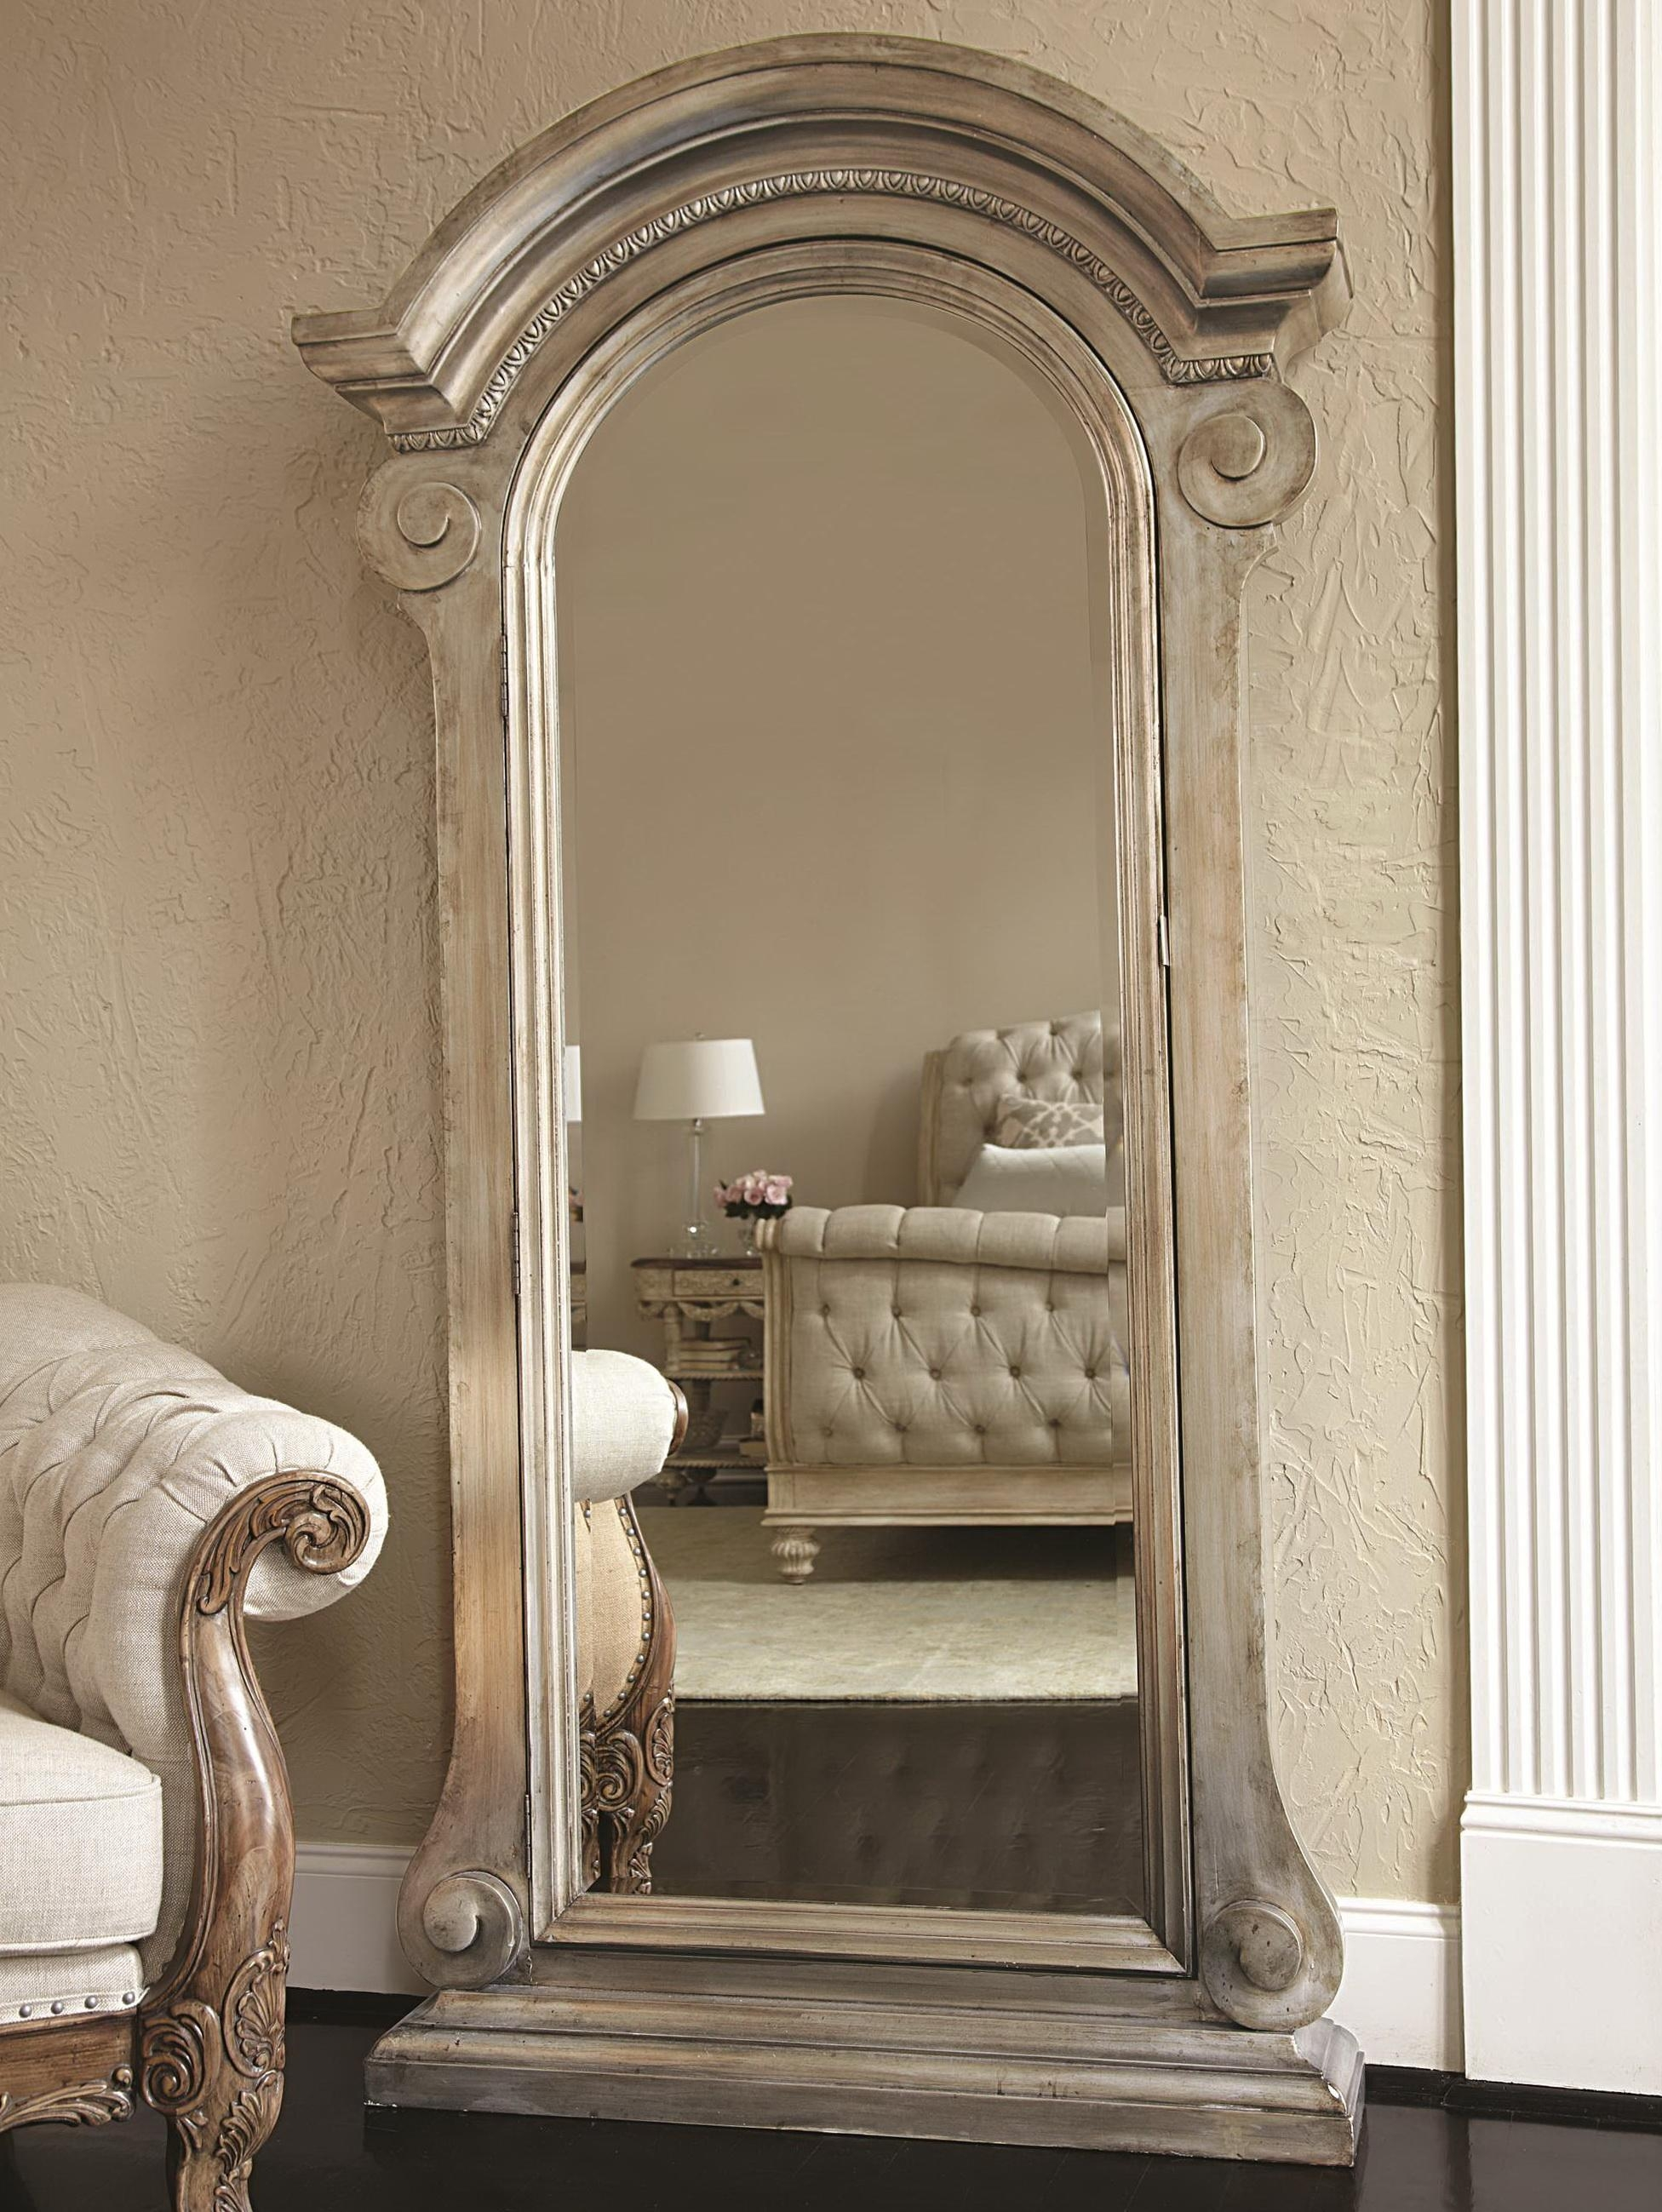 Furniture: Black Jewelry Armoire Mirror On Wooden Floor And Cream Regarding Antique Cream Mirror (Image 13 of 20)